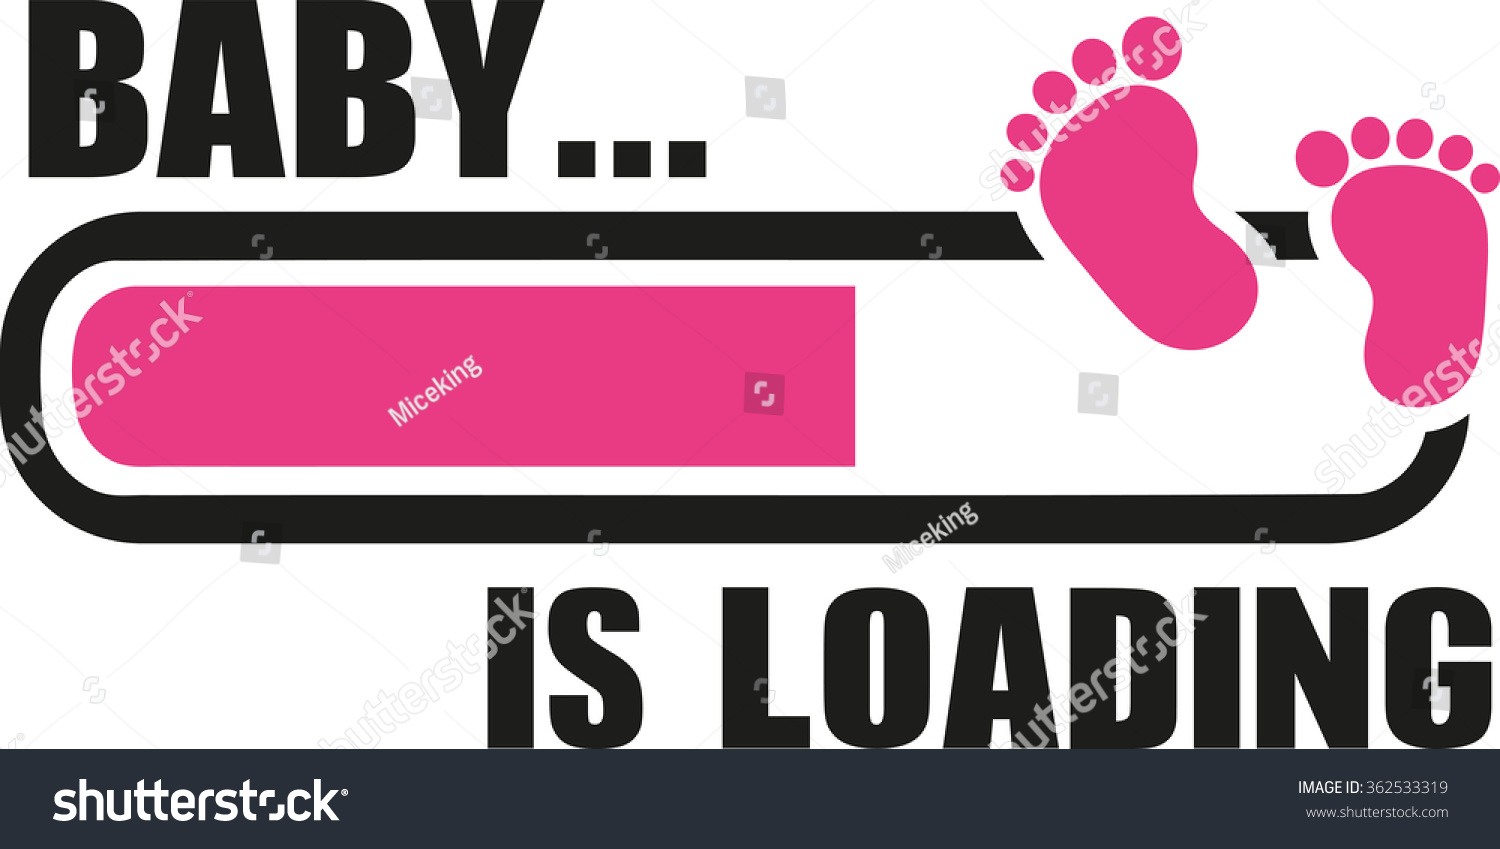 baby girl loading download bar stock vector 362533319 - shutterstock